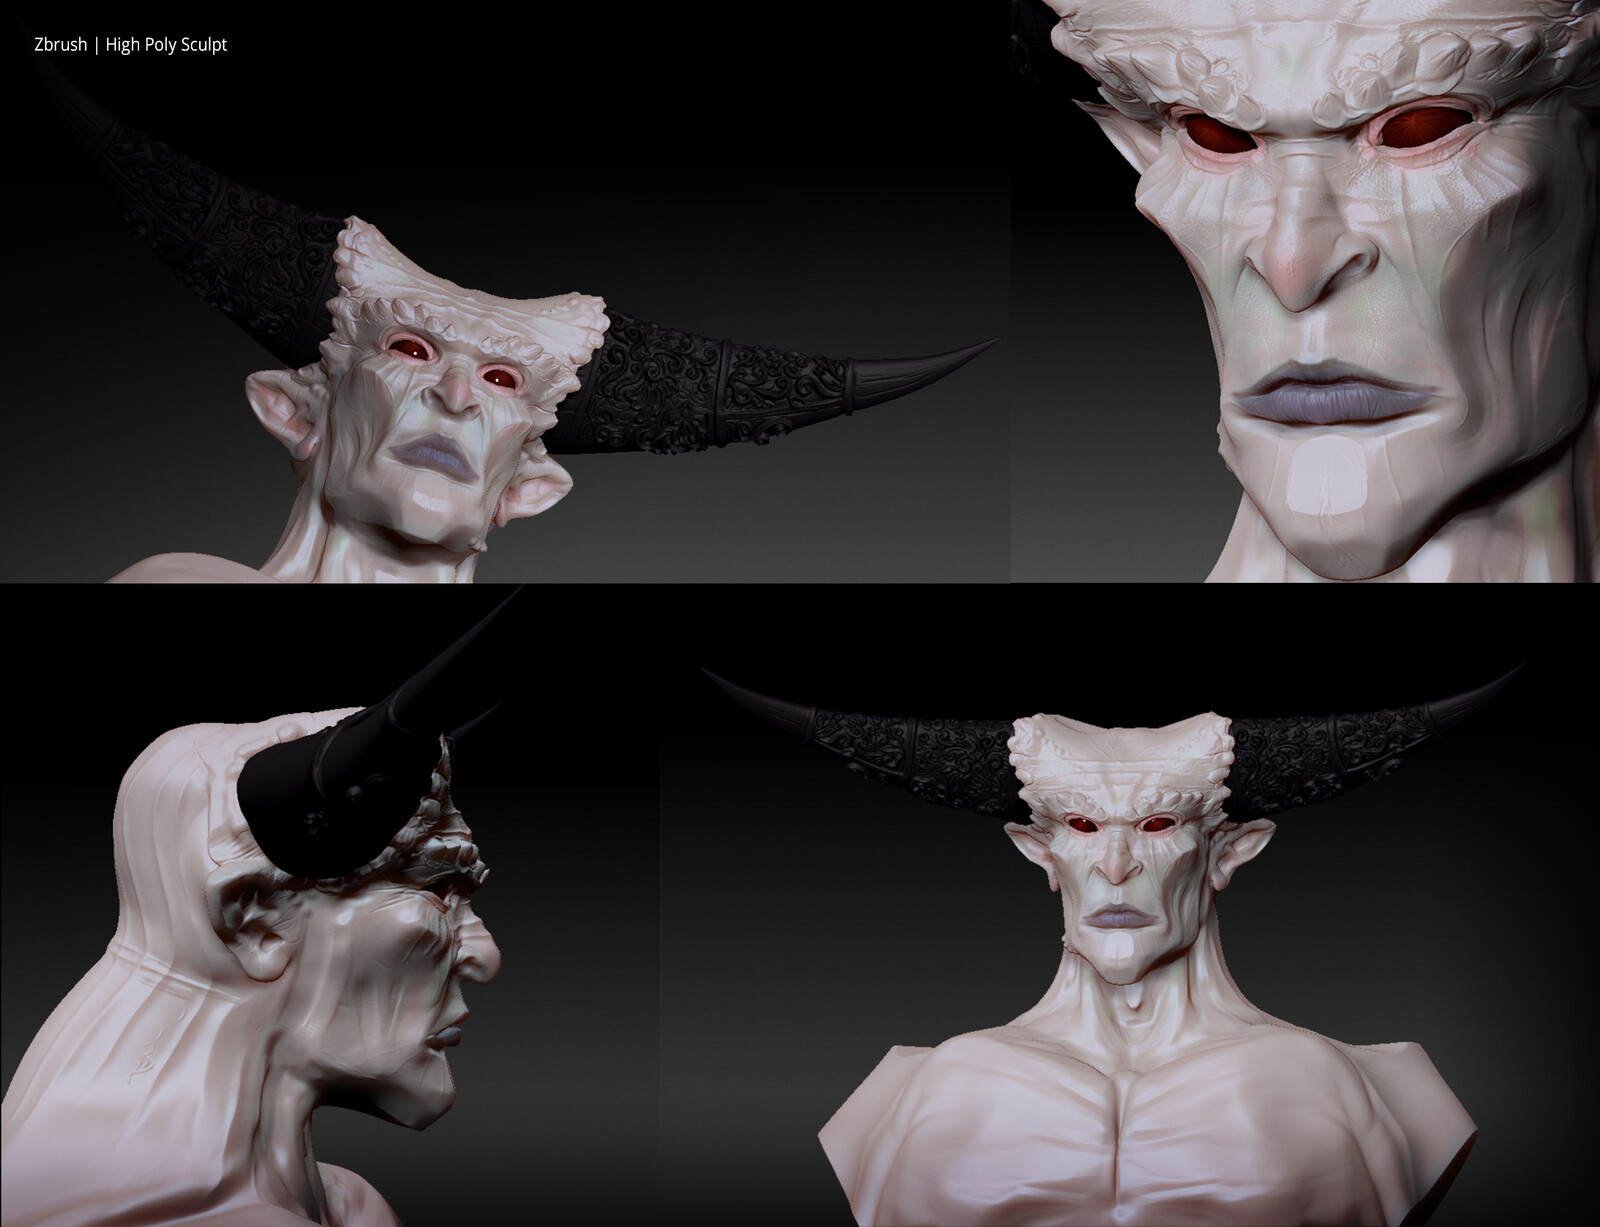 Some views of the high poly sculpt.